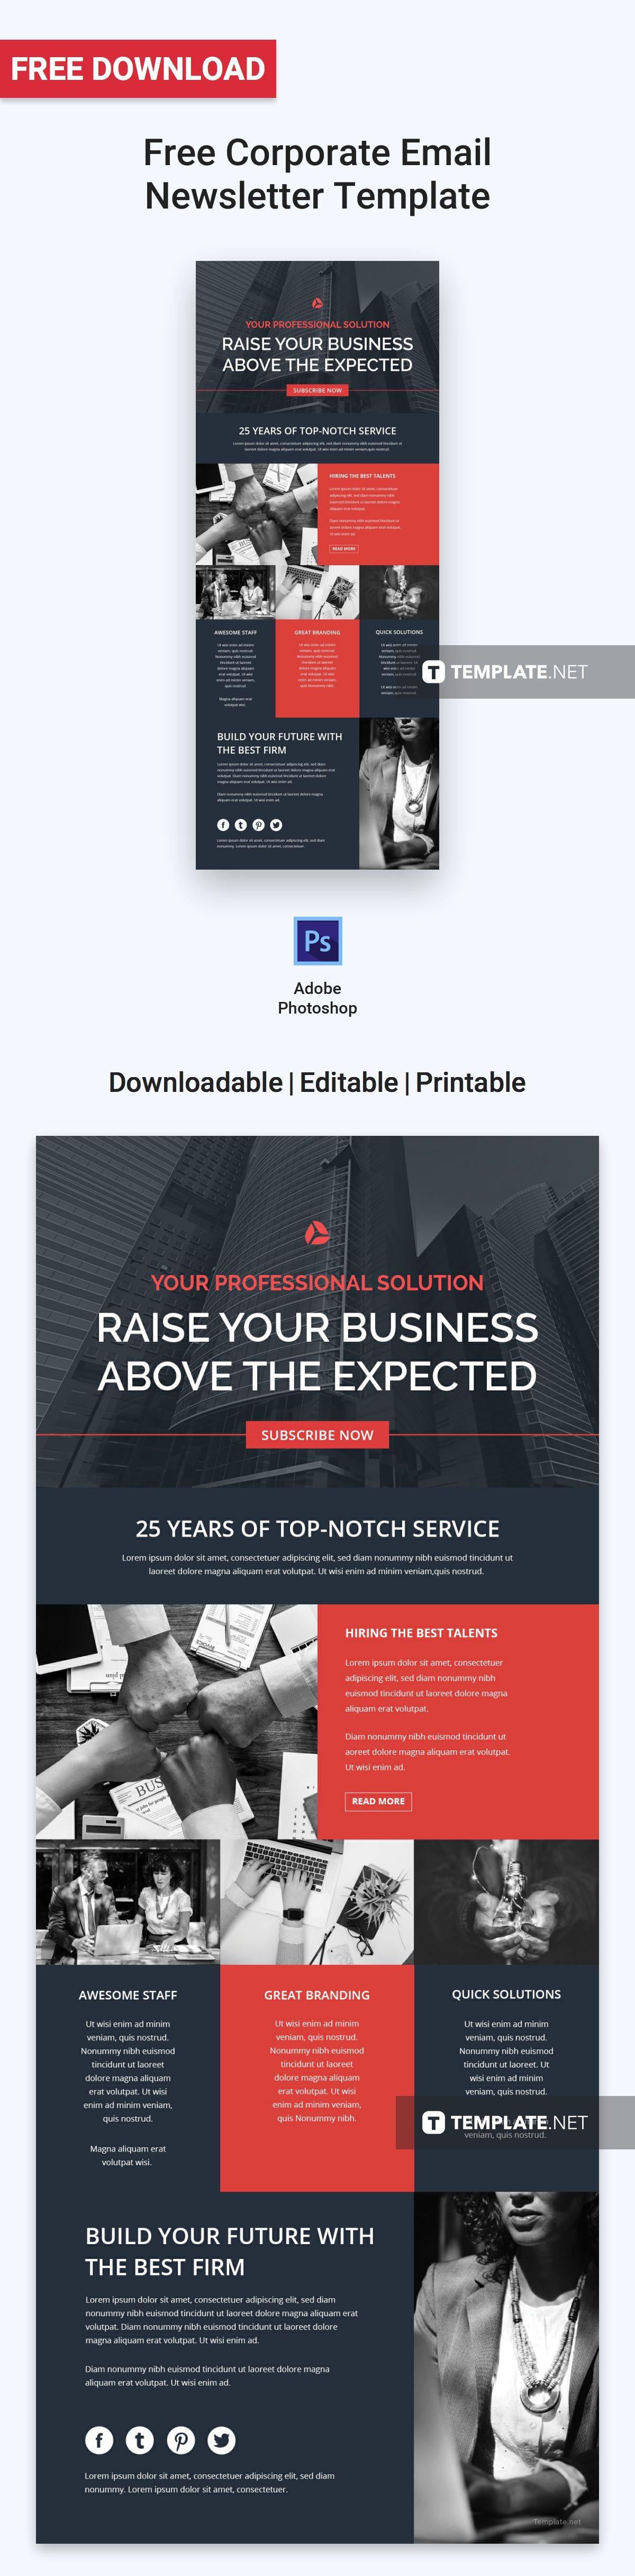 Free Corporate Email Newsletter Free Email Newsletters Templates